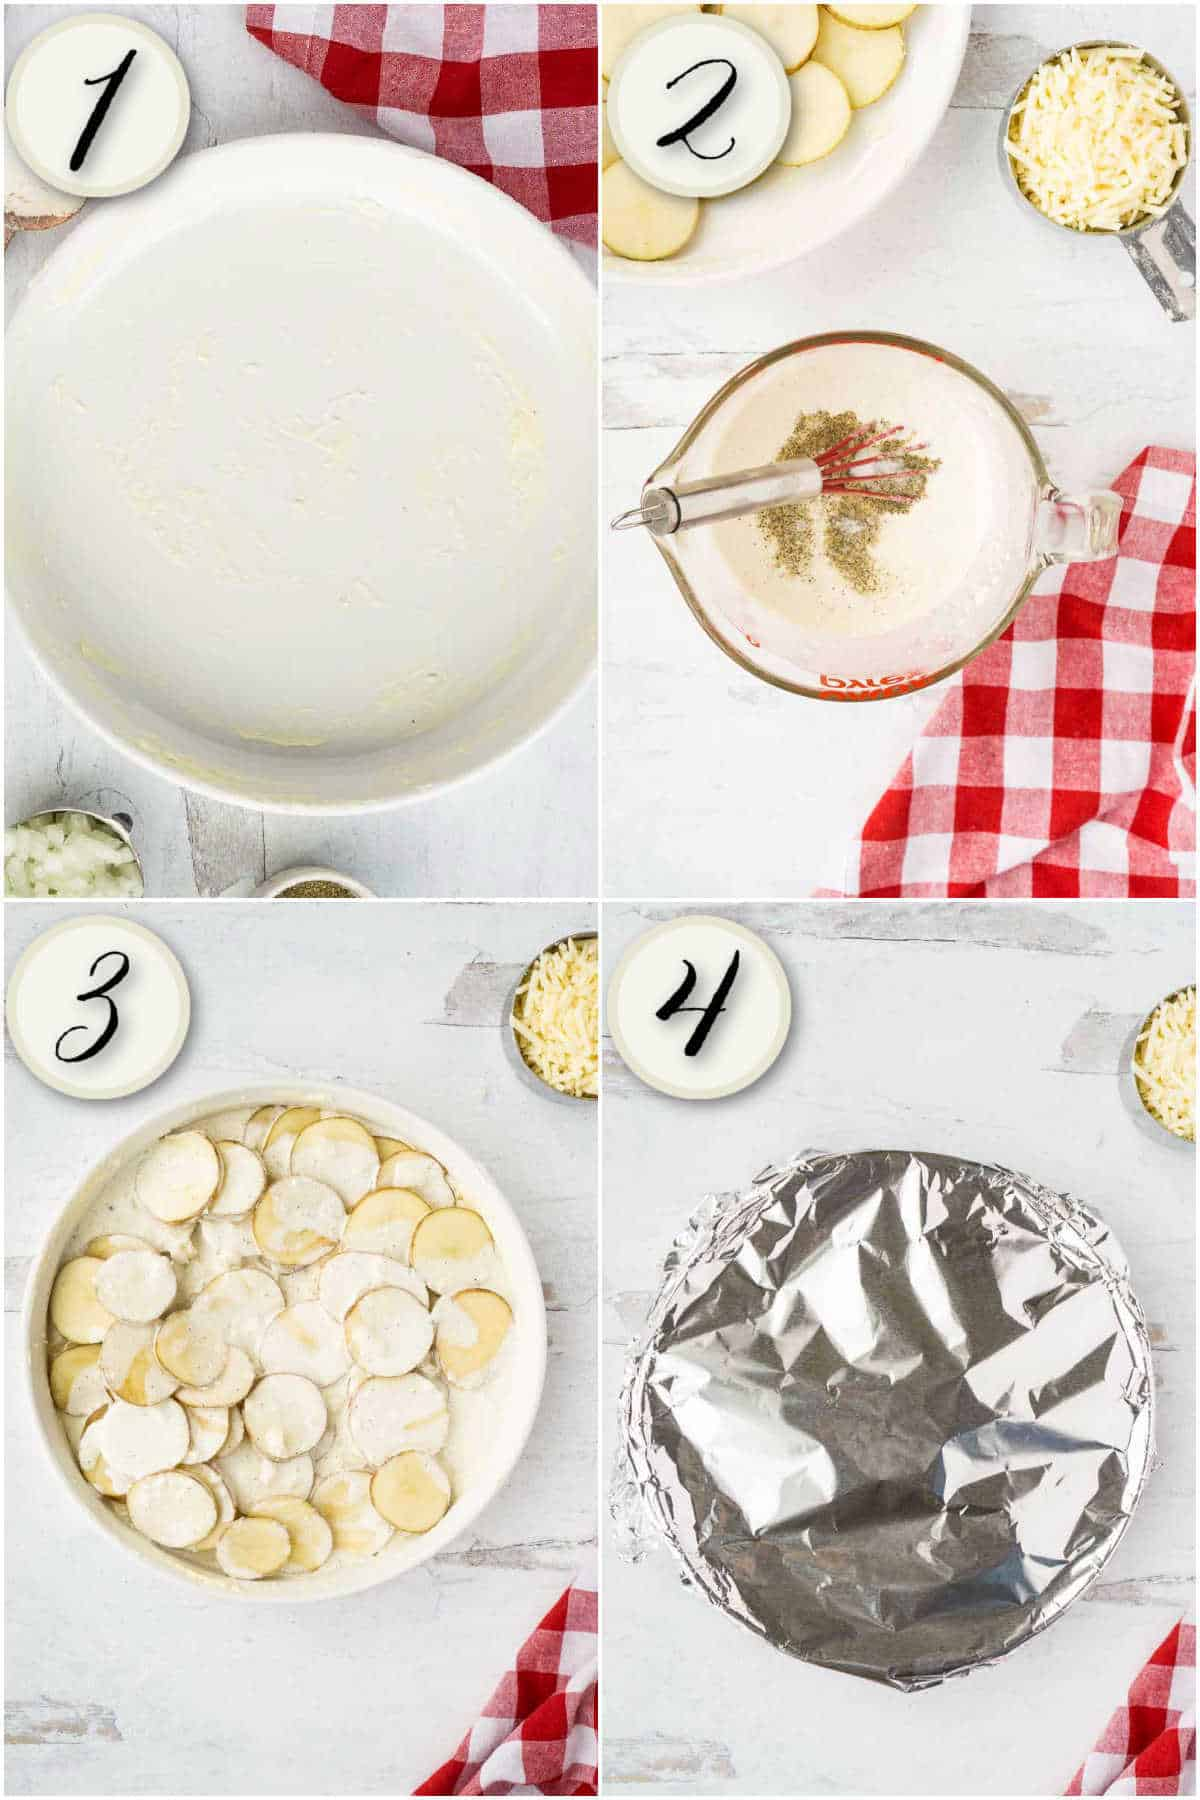 grid of 4 images: buttered casserole dish, bowl with milk, sliced potatoes, milk poured over top